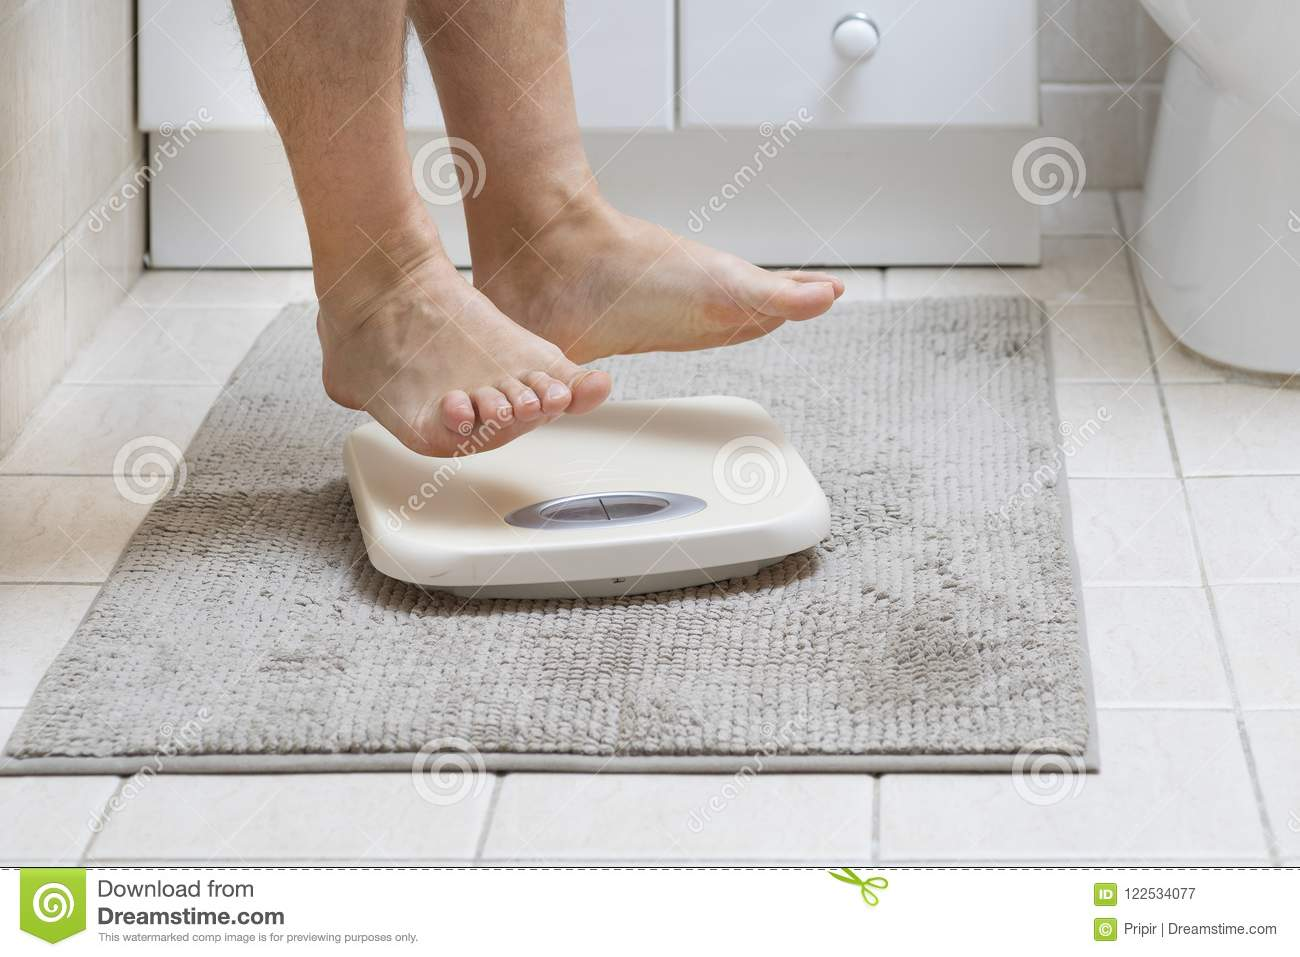 Cropped image of man feet jumping on weigh scale